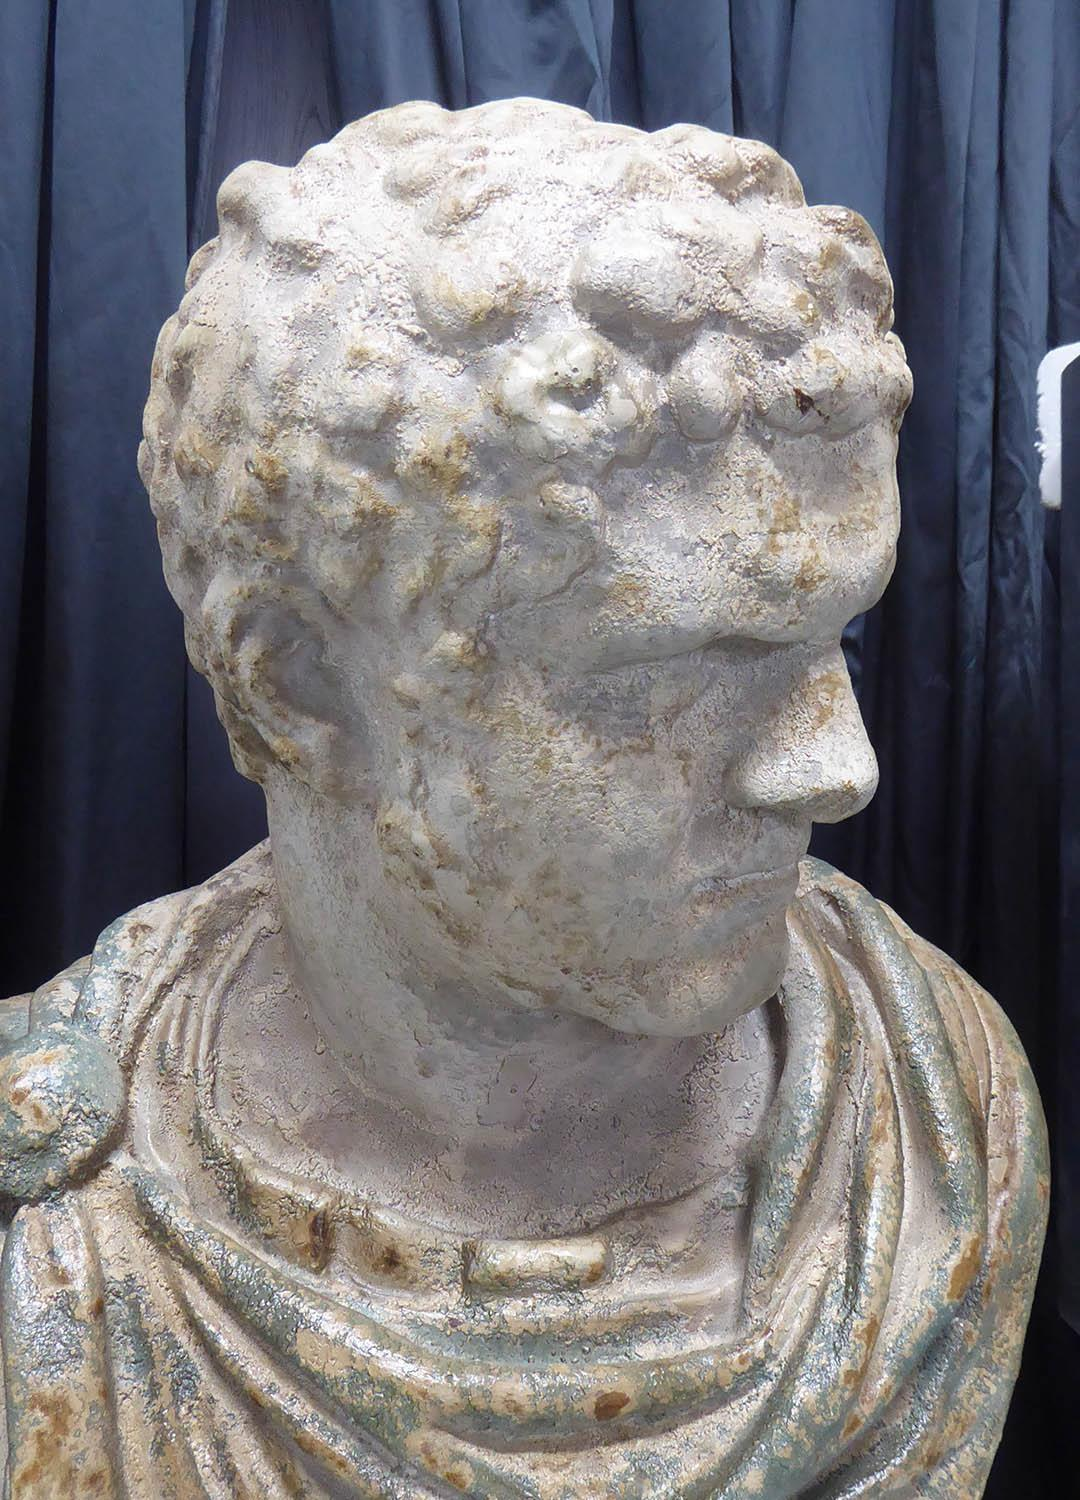 CLASSICAL STYLE BUST, on pedestal, faux aged stone finish, 111cm H approx. (2) - Image 2 of 4